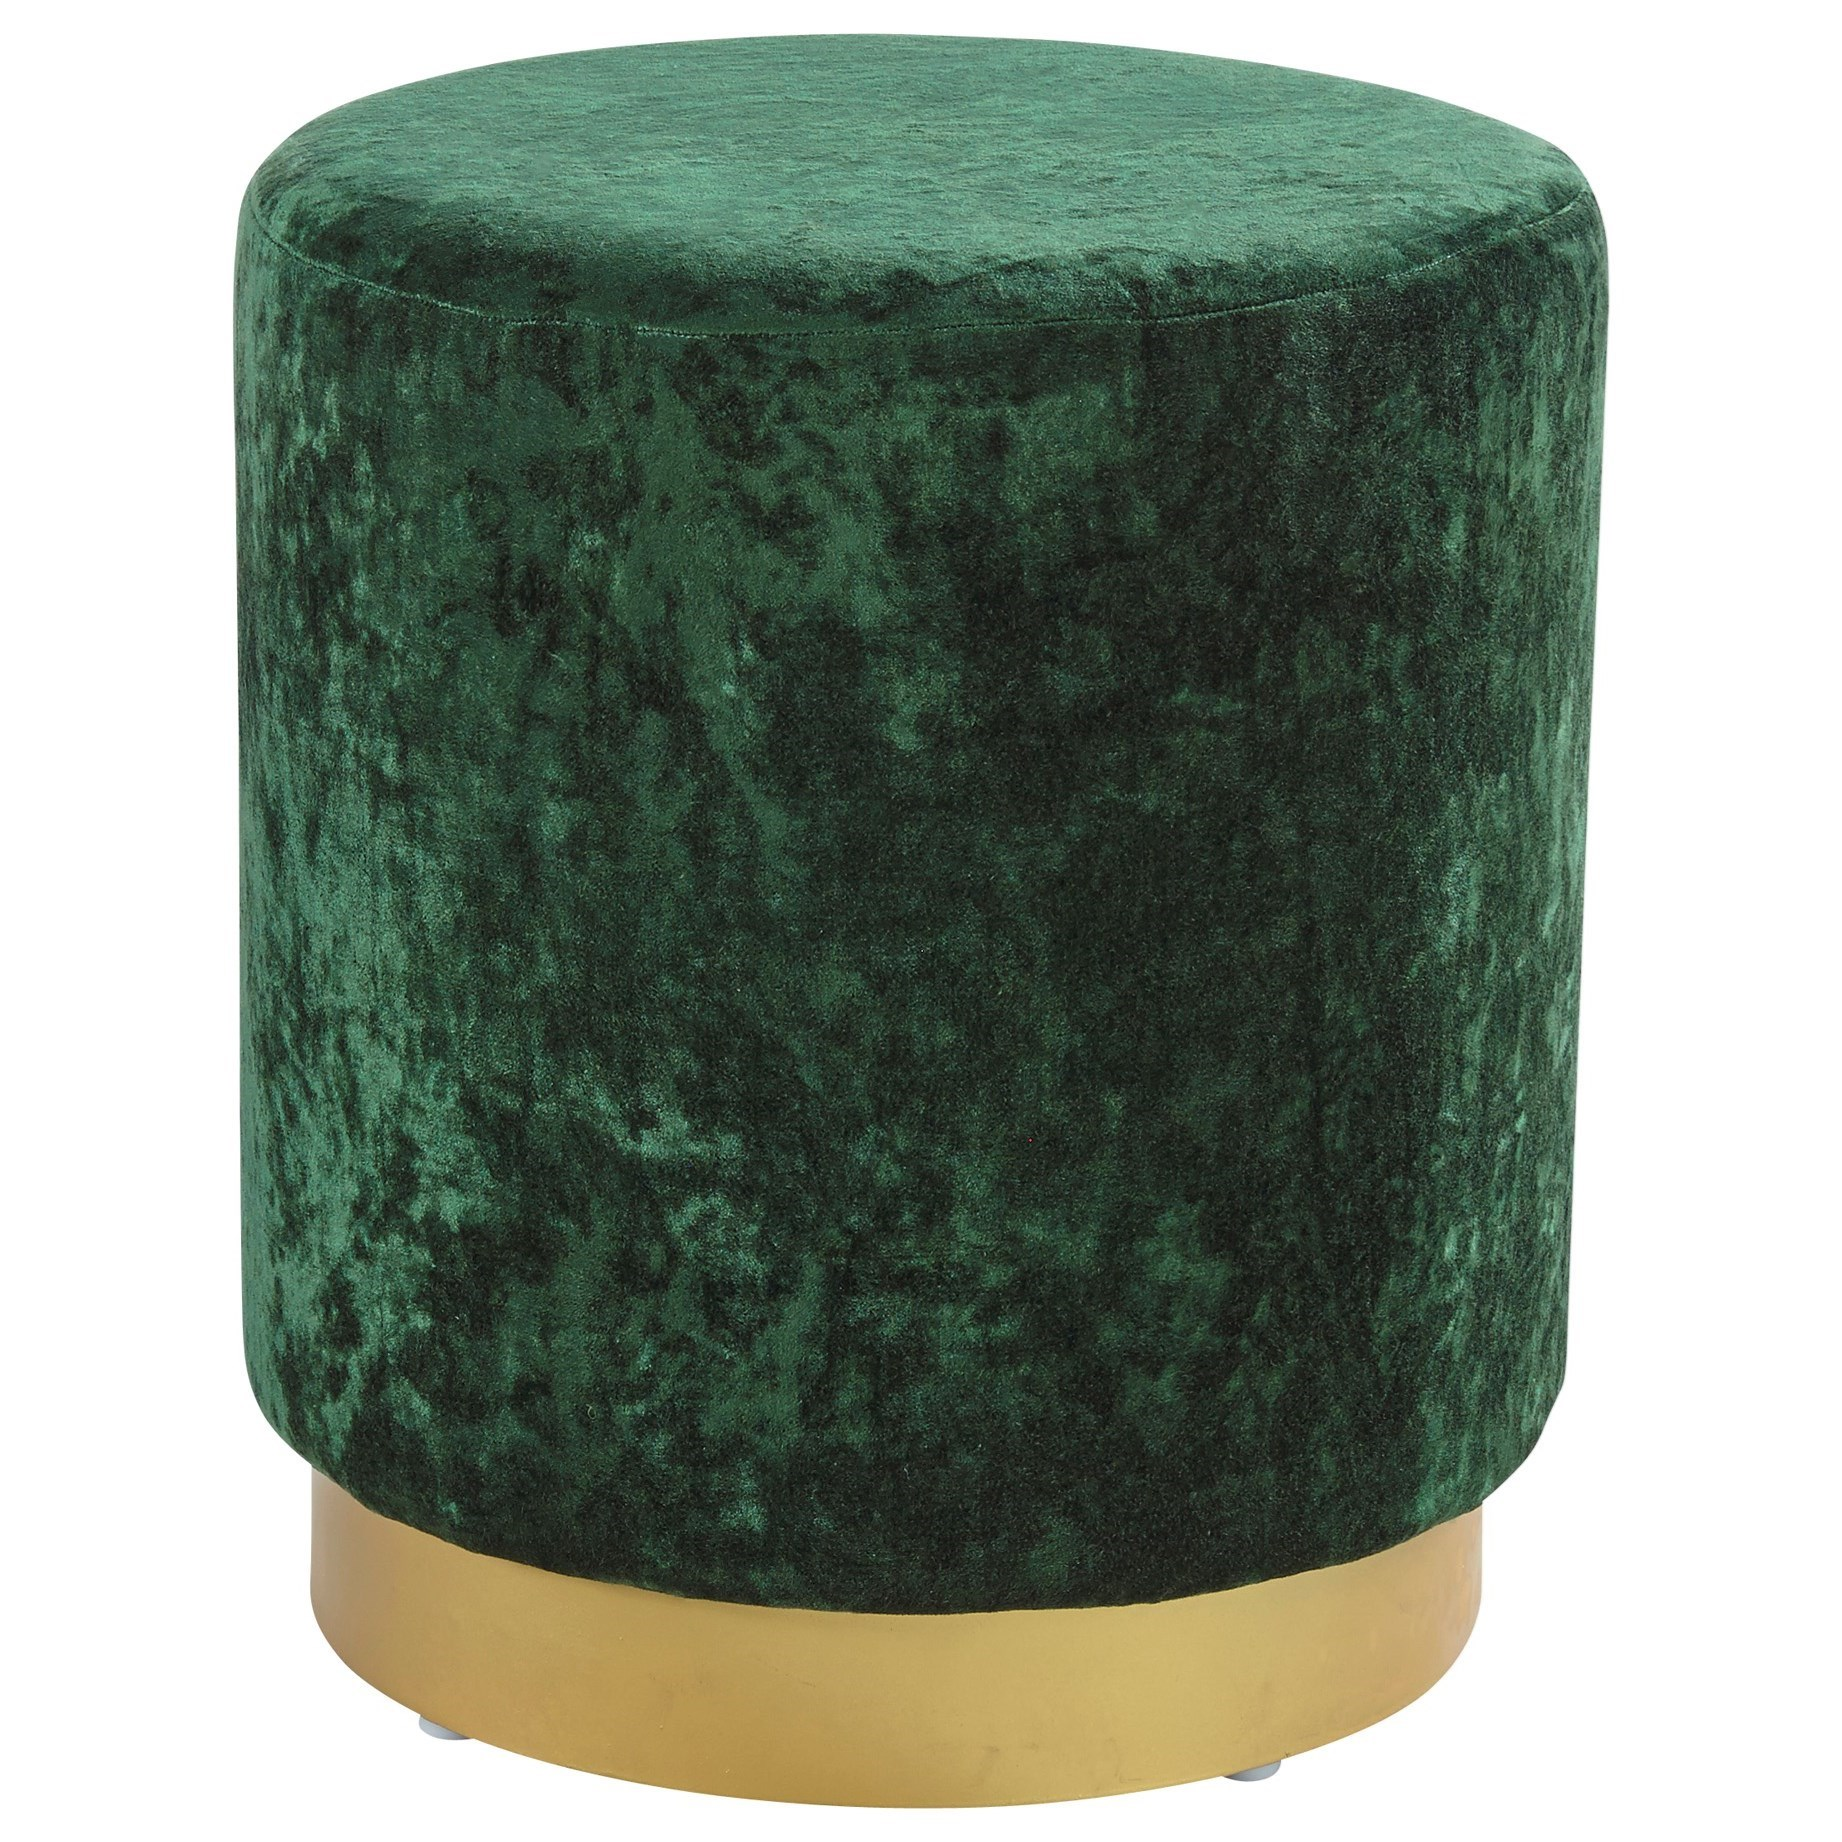 Lancer Accent Ottoman by Ashley (Signature Design) at Johnny Janosik